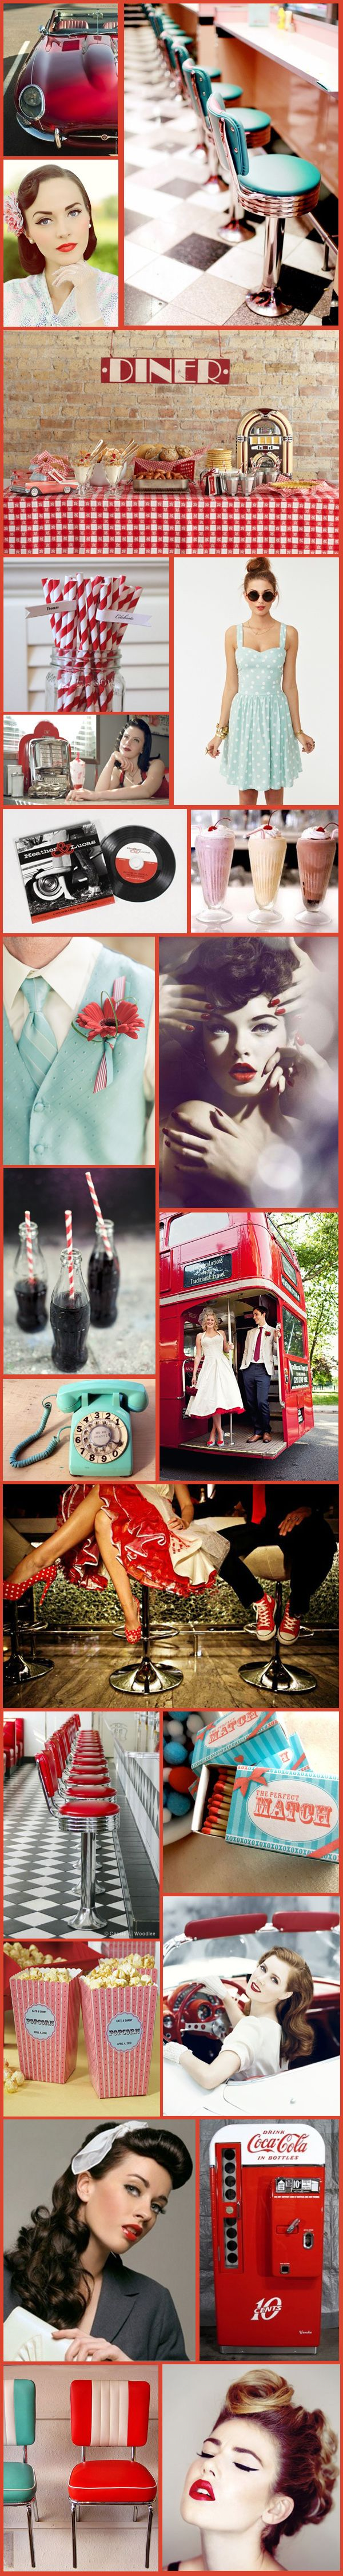 Wednesday Wedding Inspiration: Fun 50′s Retro Theme! – Bespoke-Bride: Wedding Blog ohmygod yes, this has completely changed my theme for my wedding!